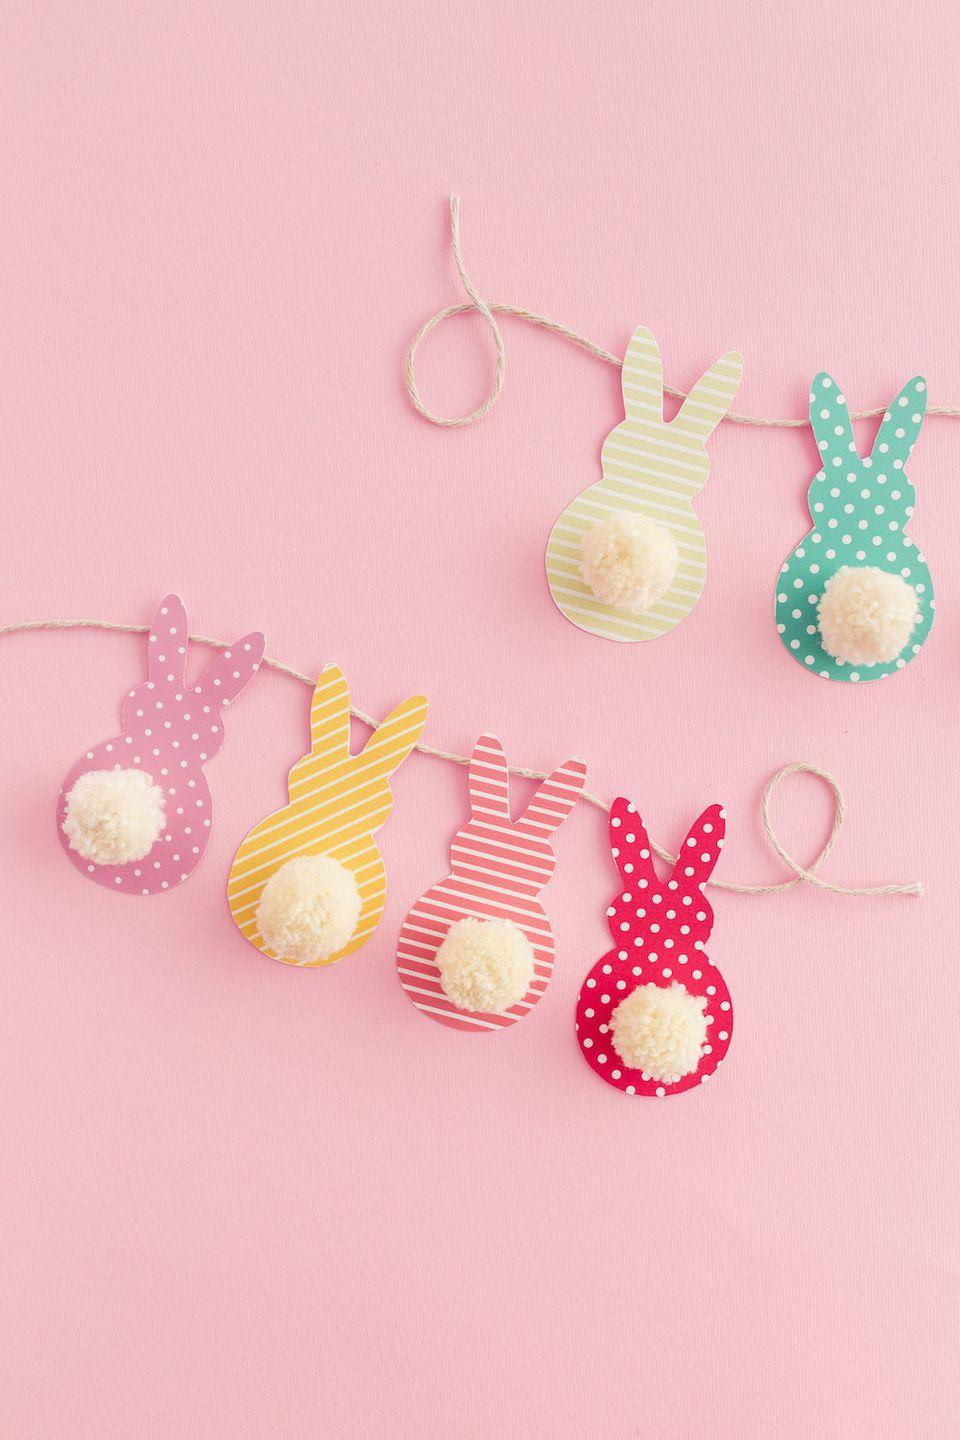 "<p>How about a homemade garland to hang in the doorway or above the dessert display at your Easter party? This free template makes it easy to create bunny shapes, and pom-poms are the perfect finishing touch.</p><p><strong>Get the tutorial at <a href=""https://diycandy.com/2017/03/pom-pom-bunny-tail-easter-garland/"" rel=""nofollow noopener"" target=""_blank"" data-ylk=""slk:DIY Candy"" class=""link rapid-noclick-resp"">DIY Candy</a>.</strong></p><p><a class=""link rapid-noclick-resp"" href=""https://www.amazon.com/Dots-Stripes-Patterned-Cardstock-Value/dp/B0761FPGY4/ref=sr_1_5?tag=syn-yahoo-20&ascsubtag=%5Bartid%7C10050.g.1652%5Bsrc%7Cyahoo-us"" rel=""nofollow noopener"" target=""_blank"" data-ylk=""slk:SHOP PAPER"">SHOP PAPER</a></p>"